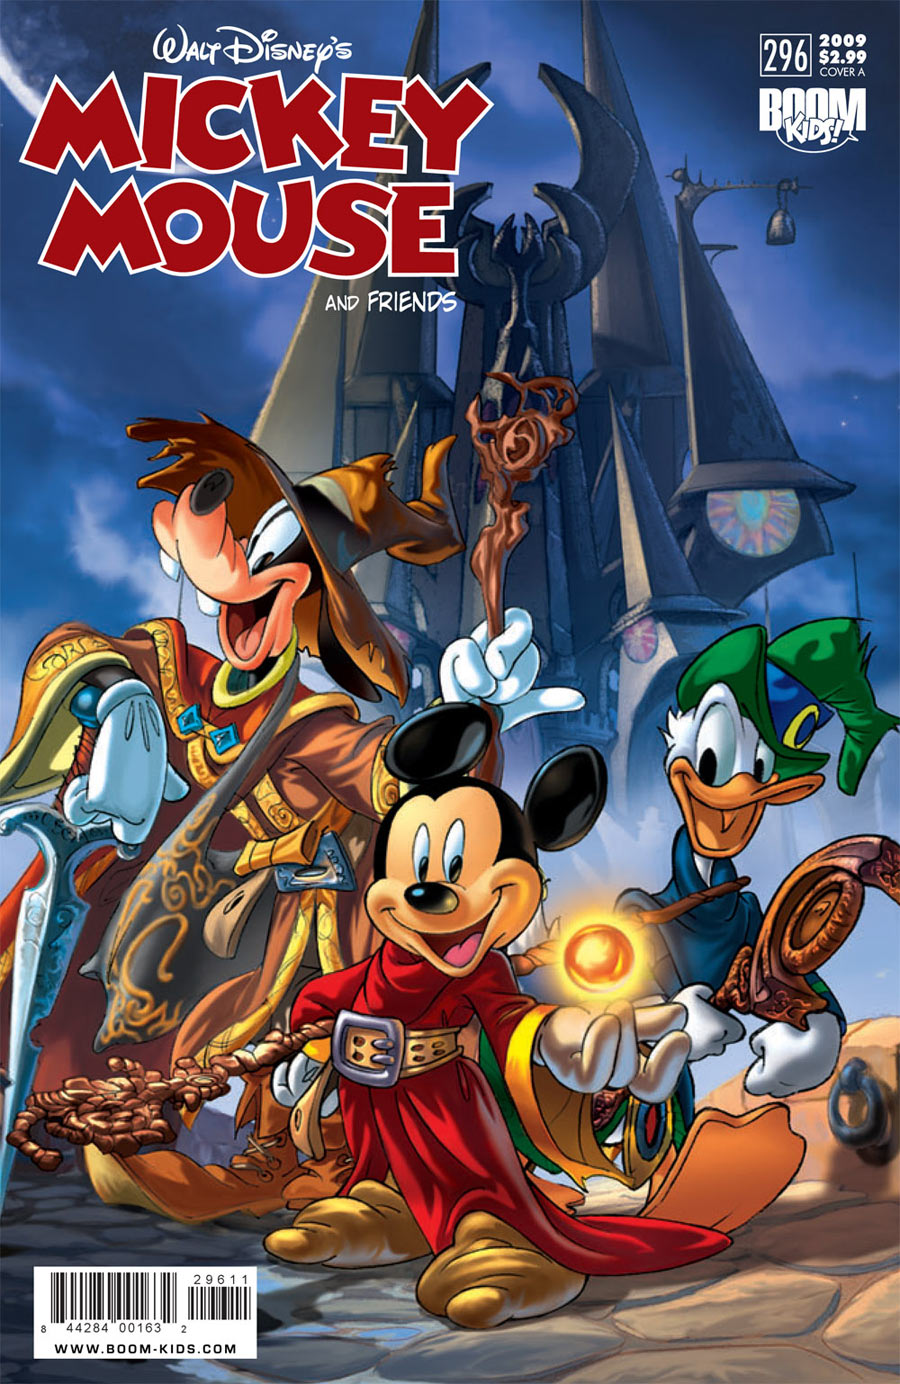 Mickey-Mouse-and-Friends-comics cover